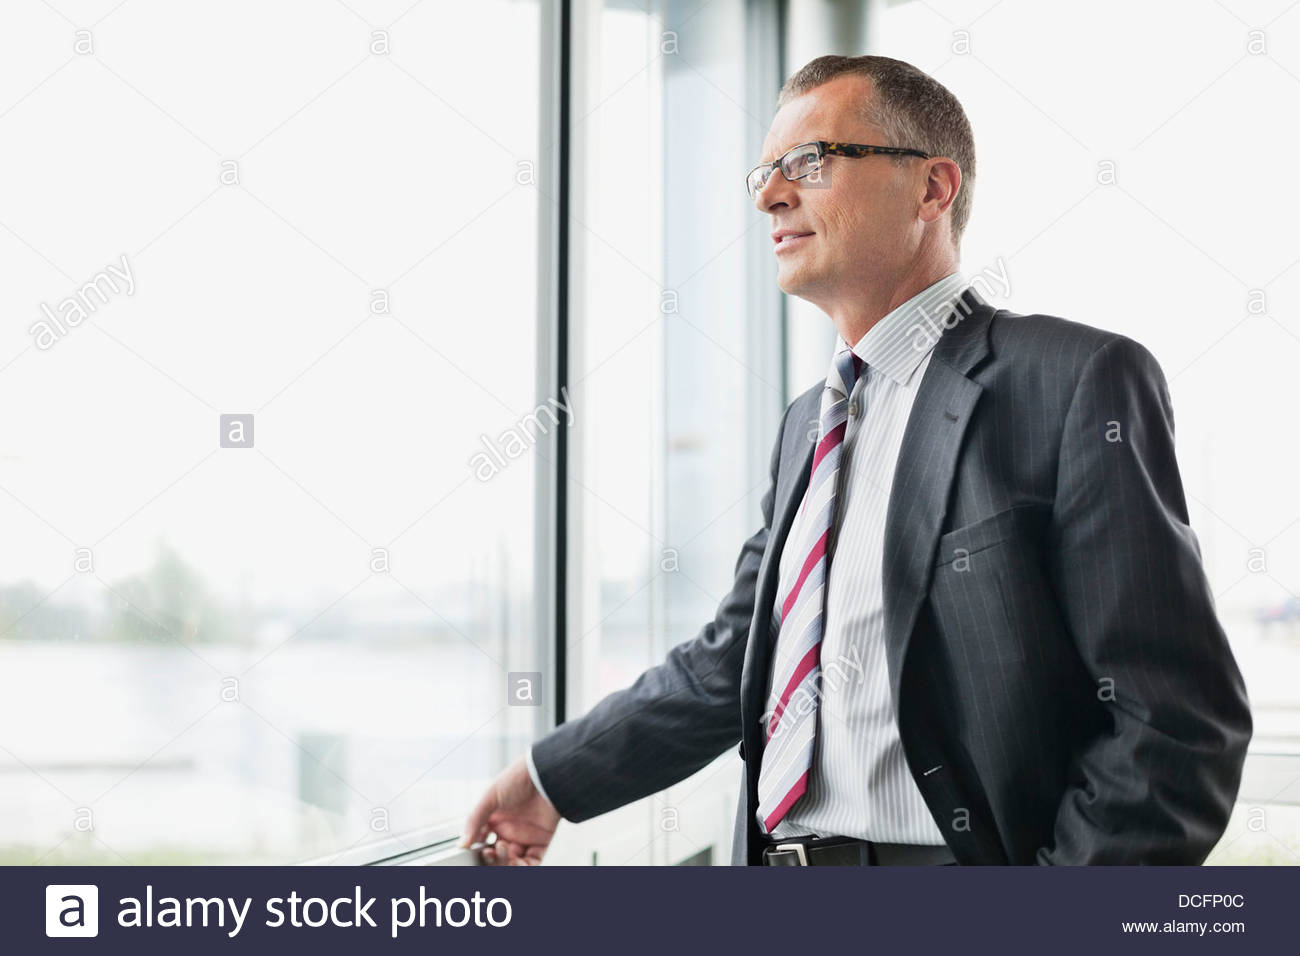 Thoughtful businessman looking out window in office - Stock Image